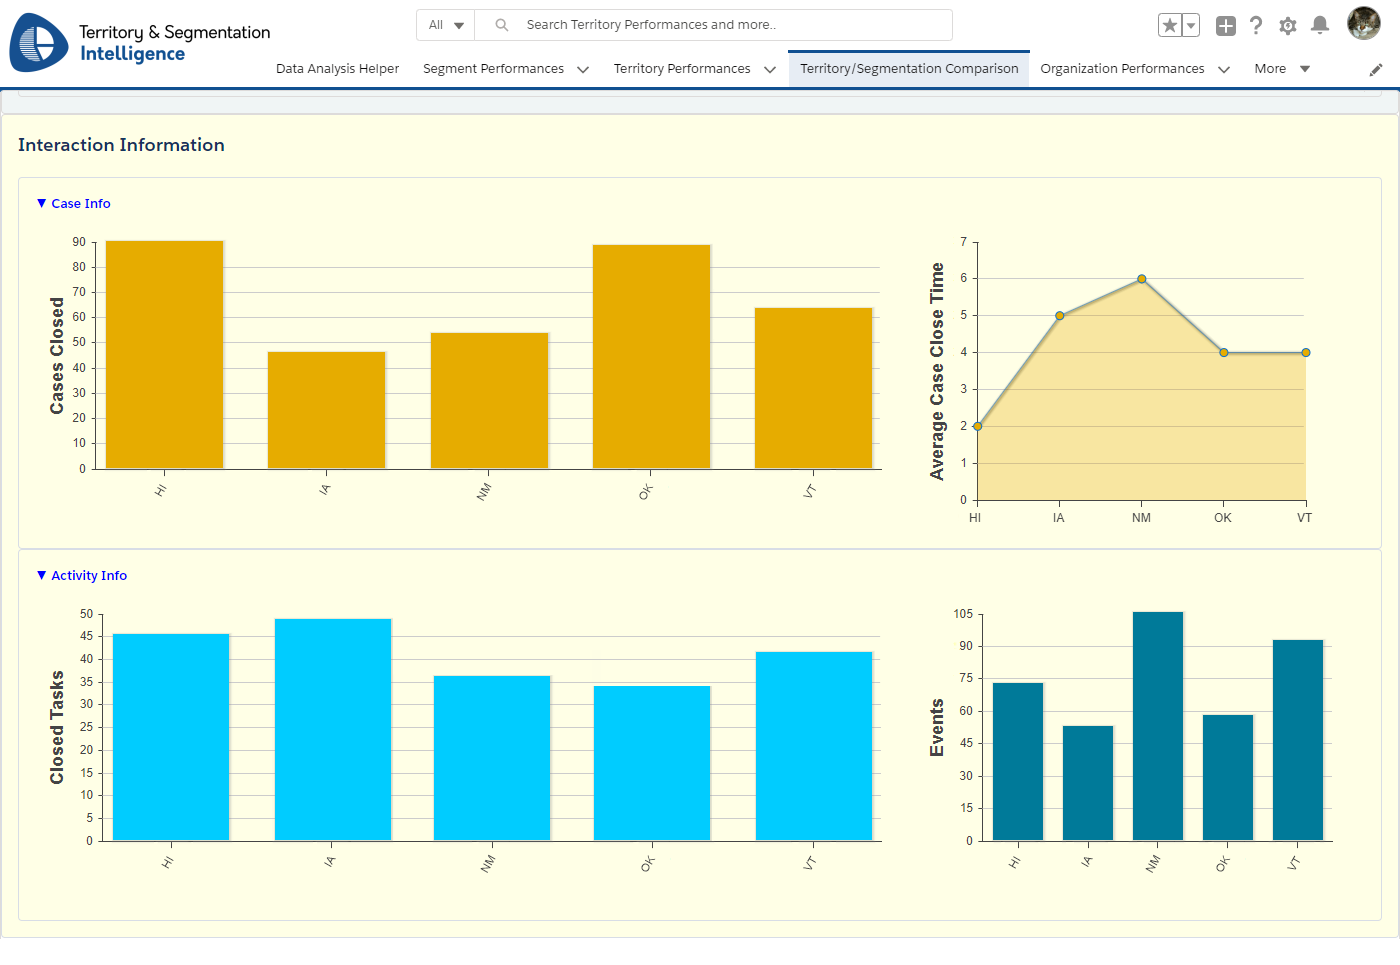 Sales Dashboard for Cases and Activities